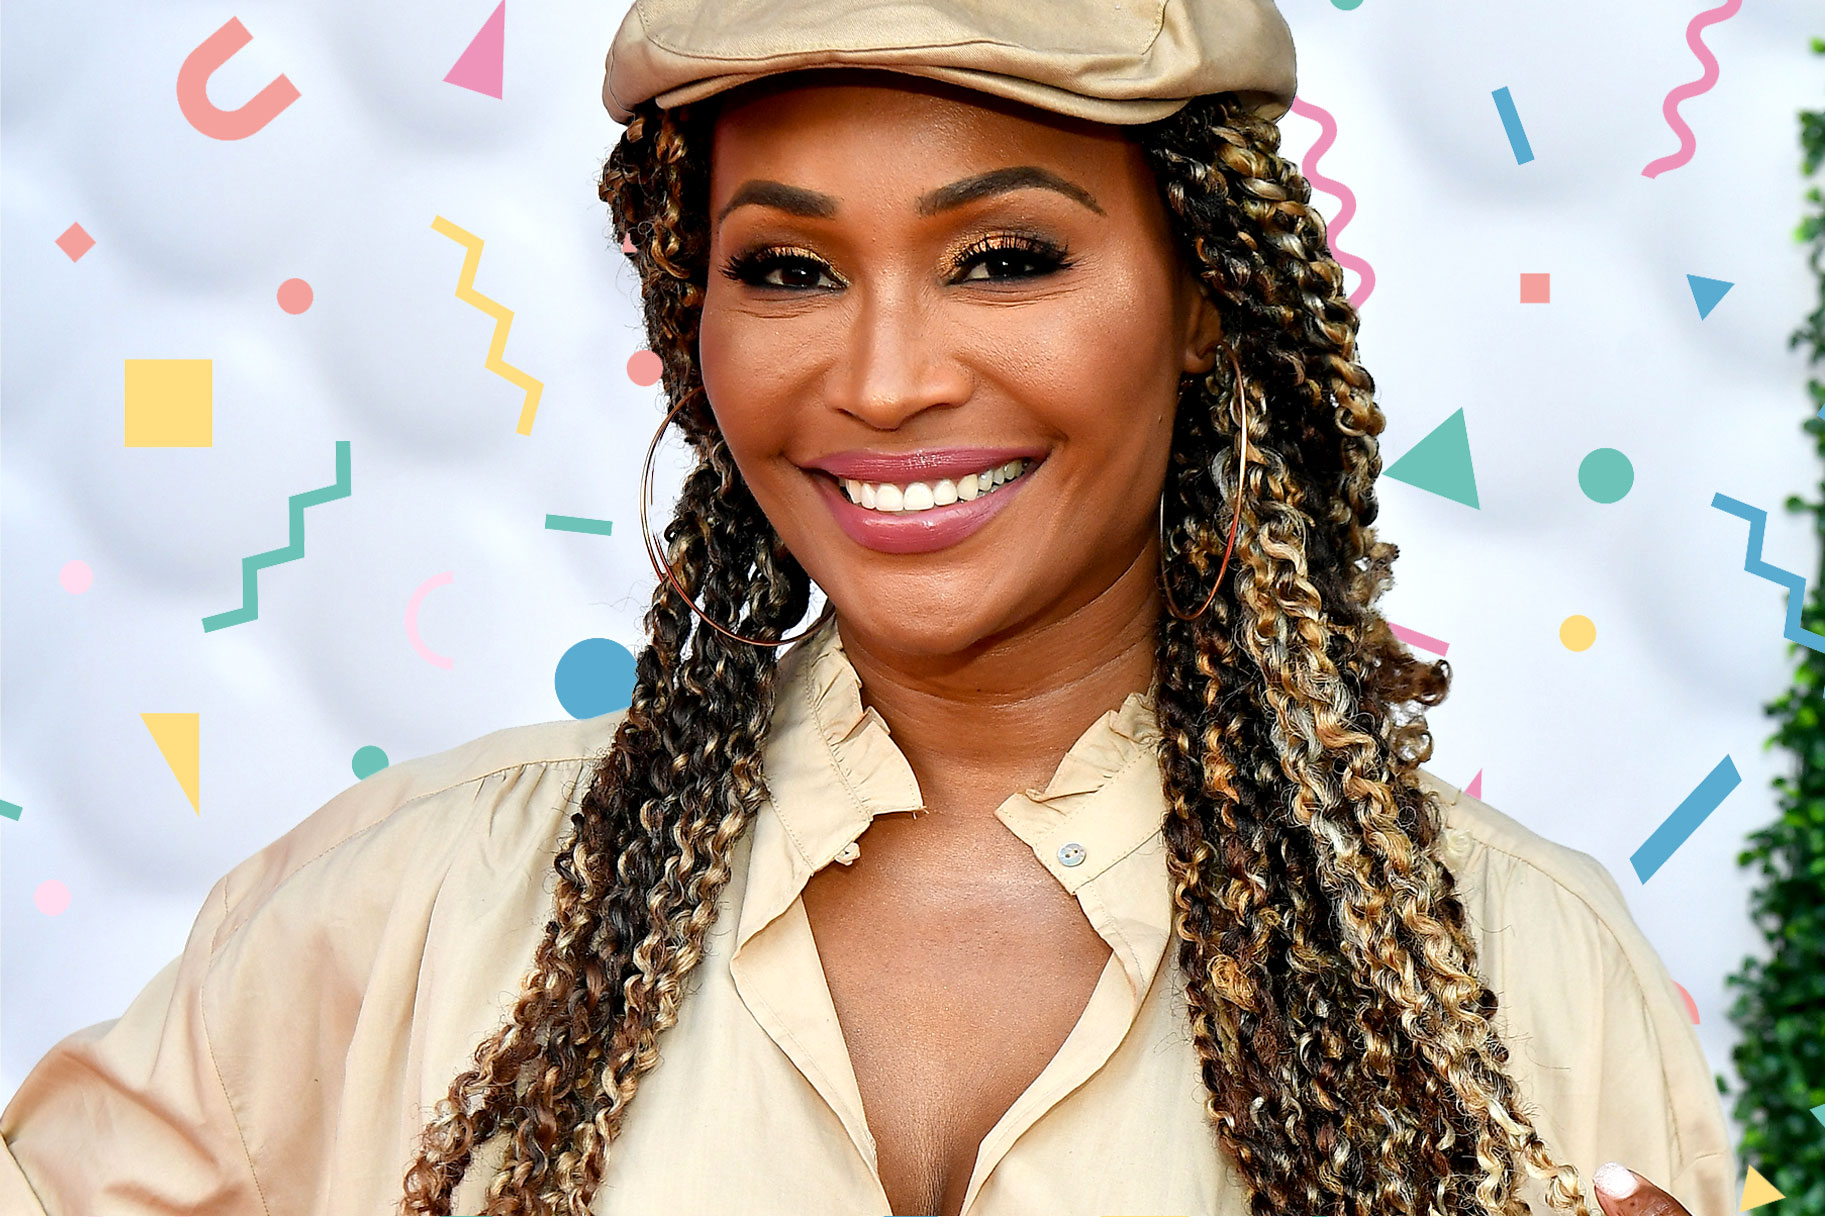 Cynthia Bailey Makeup Free